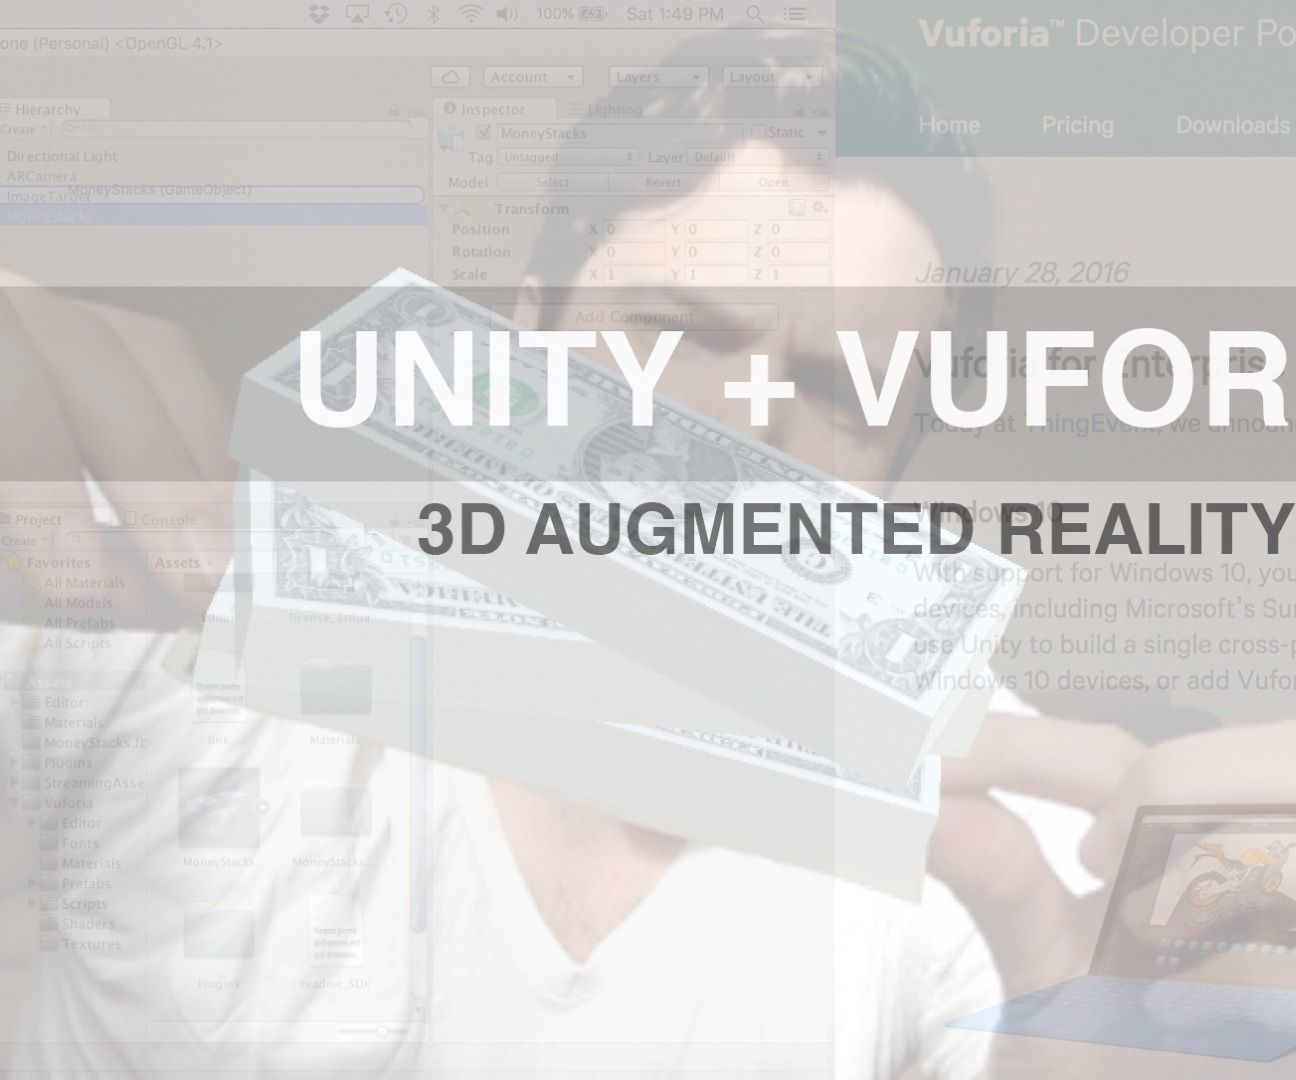 3D Augmented Reality with Vuforia